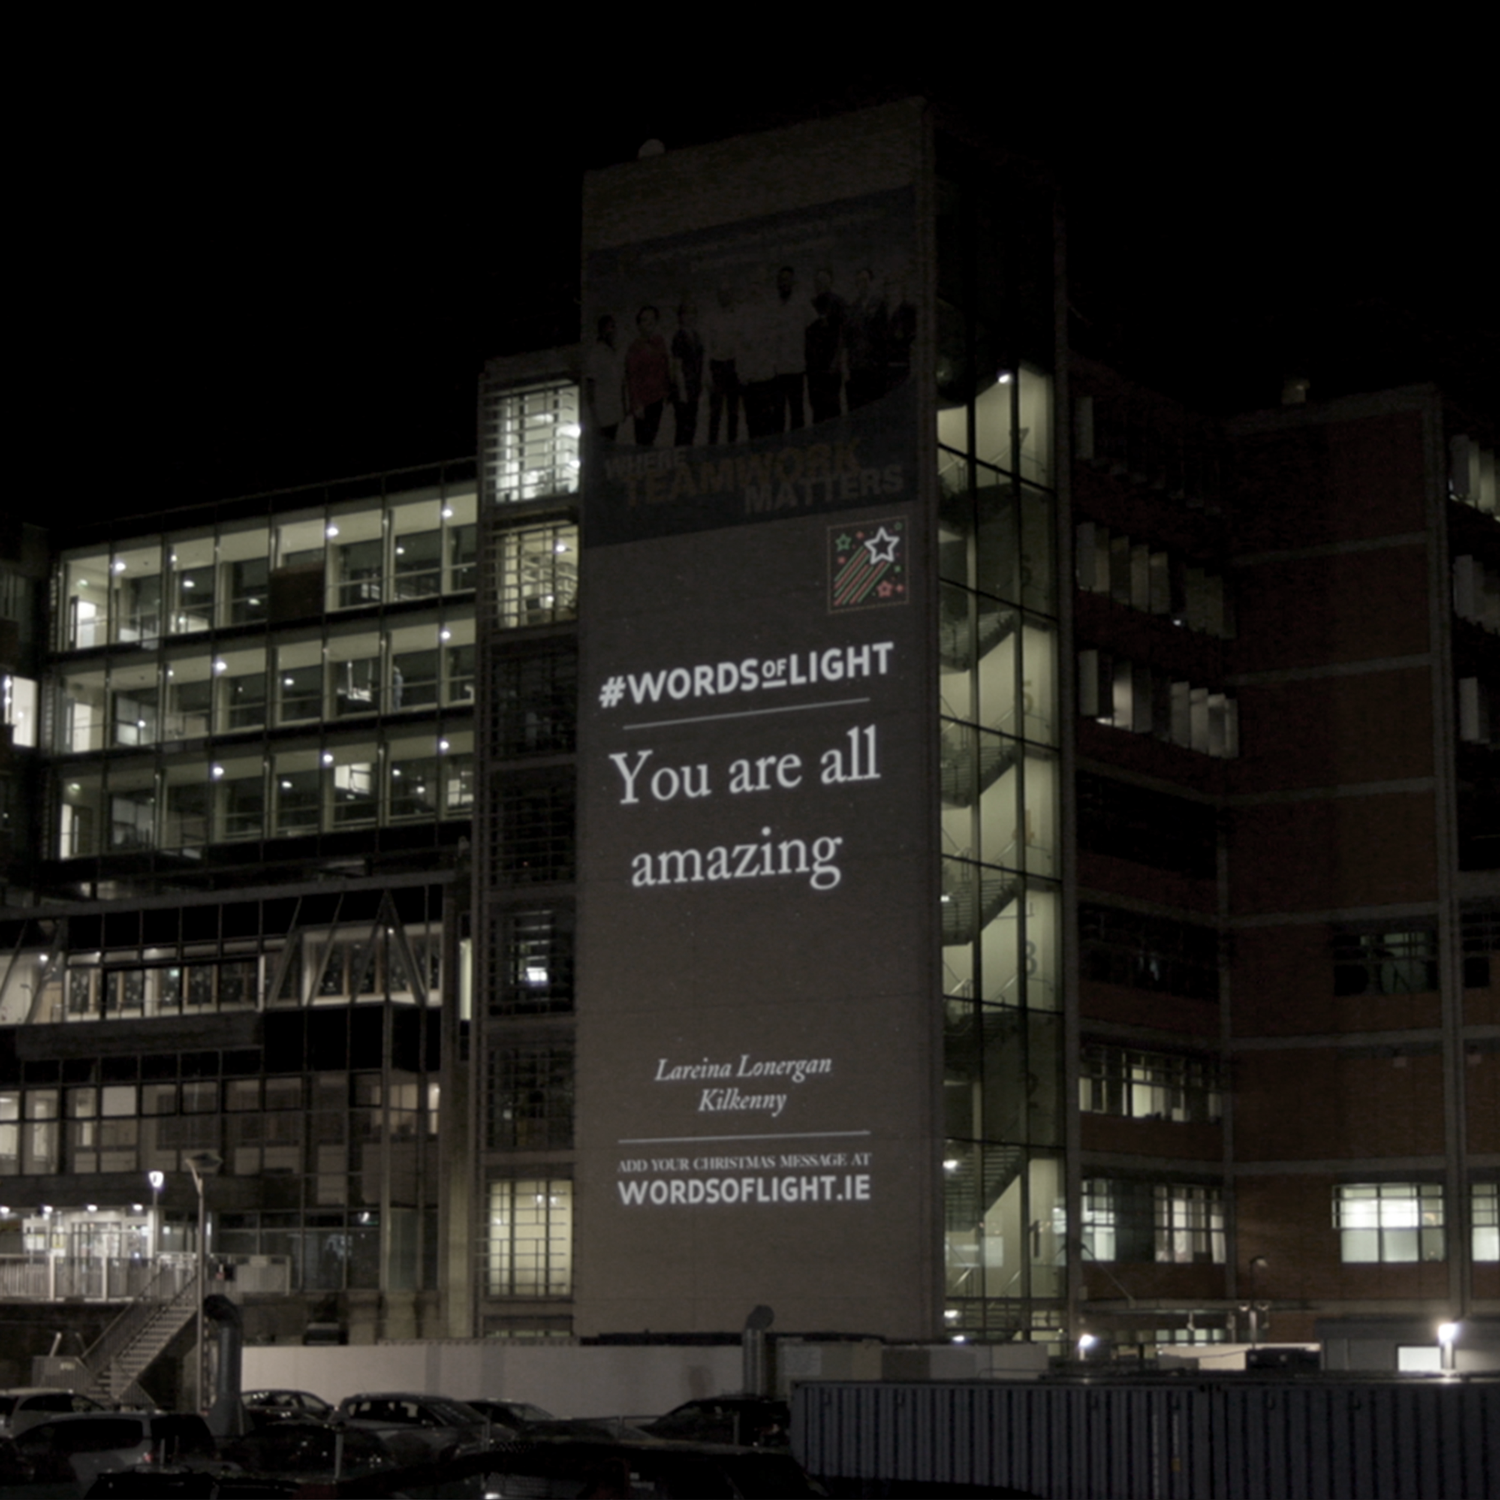 Words of Light projection at The Mater